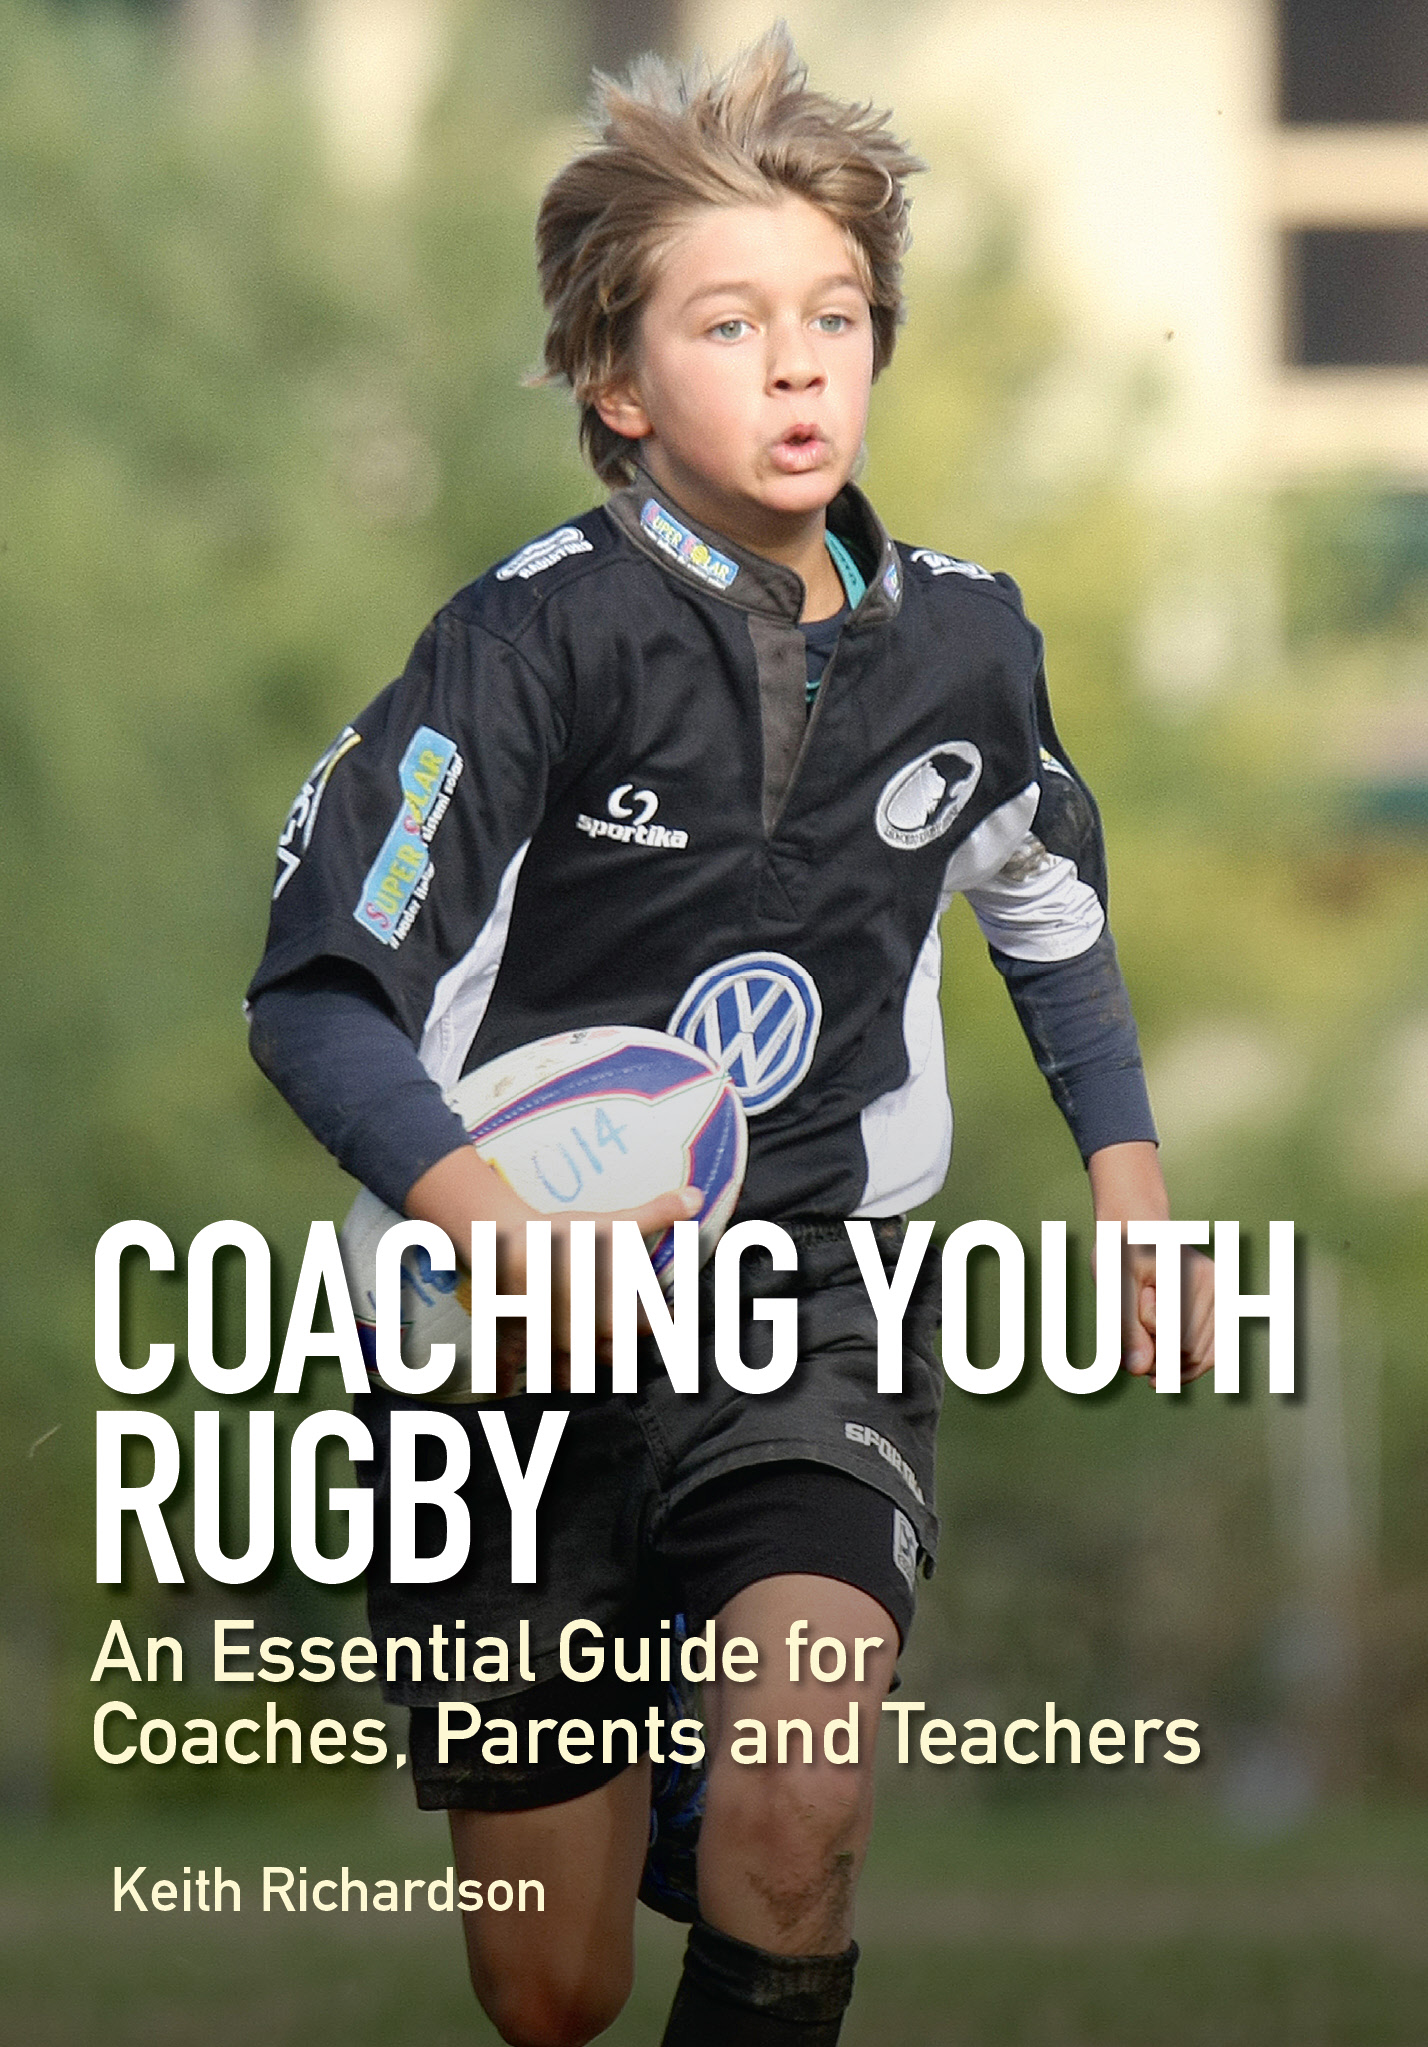 New rugby manual will help coaches